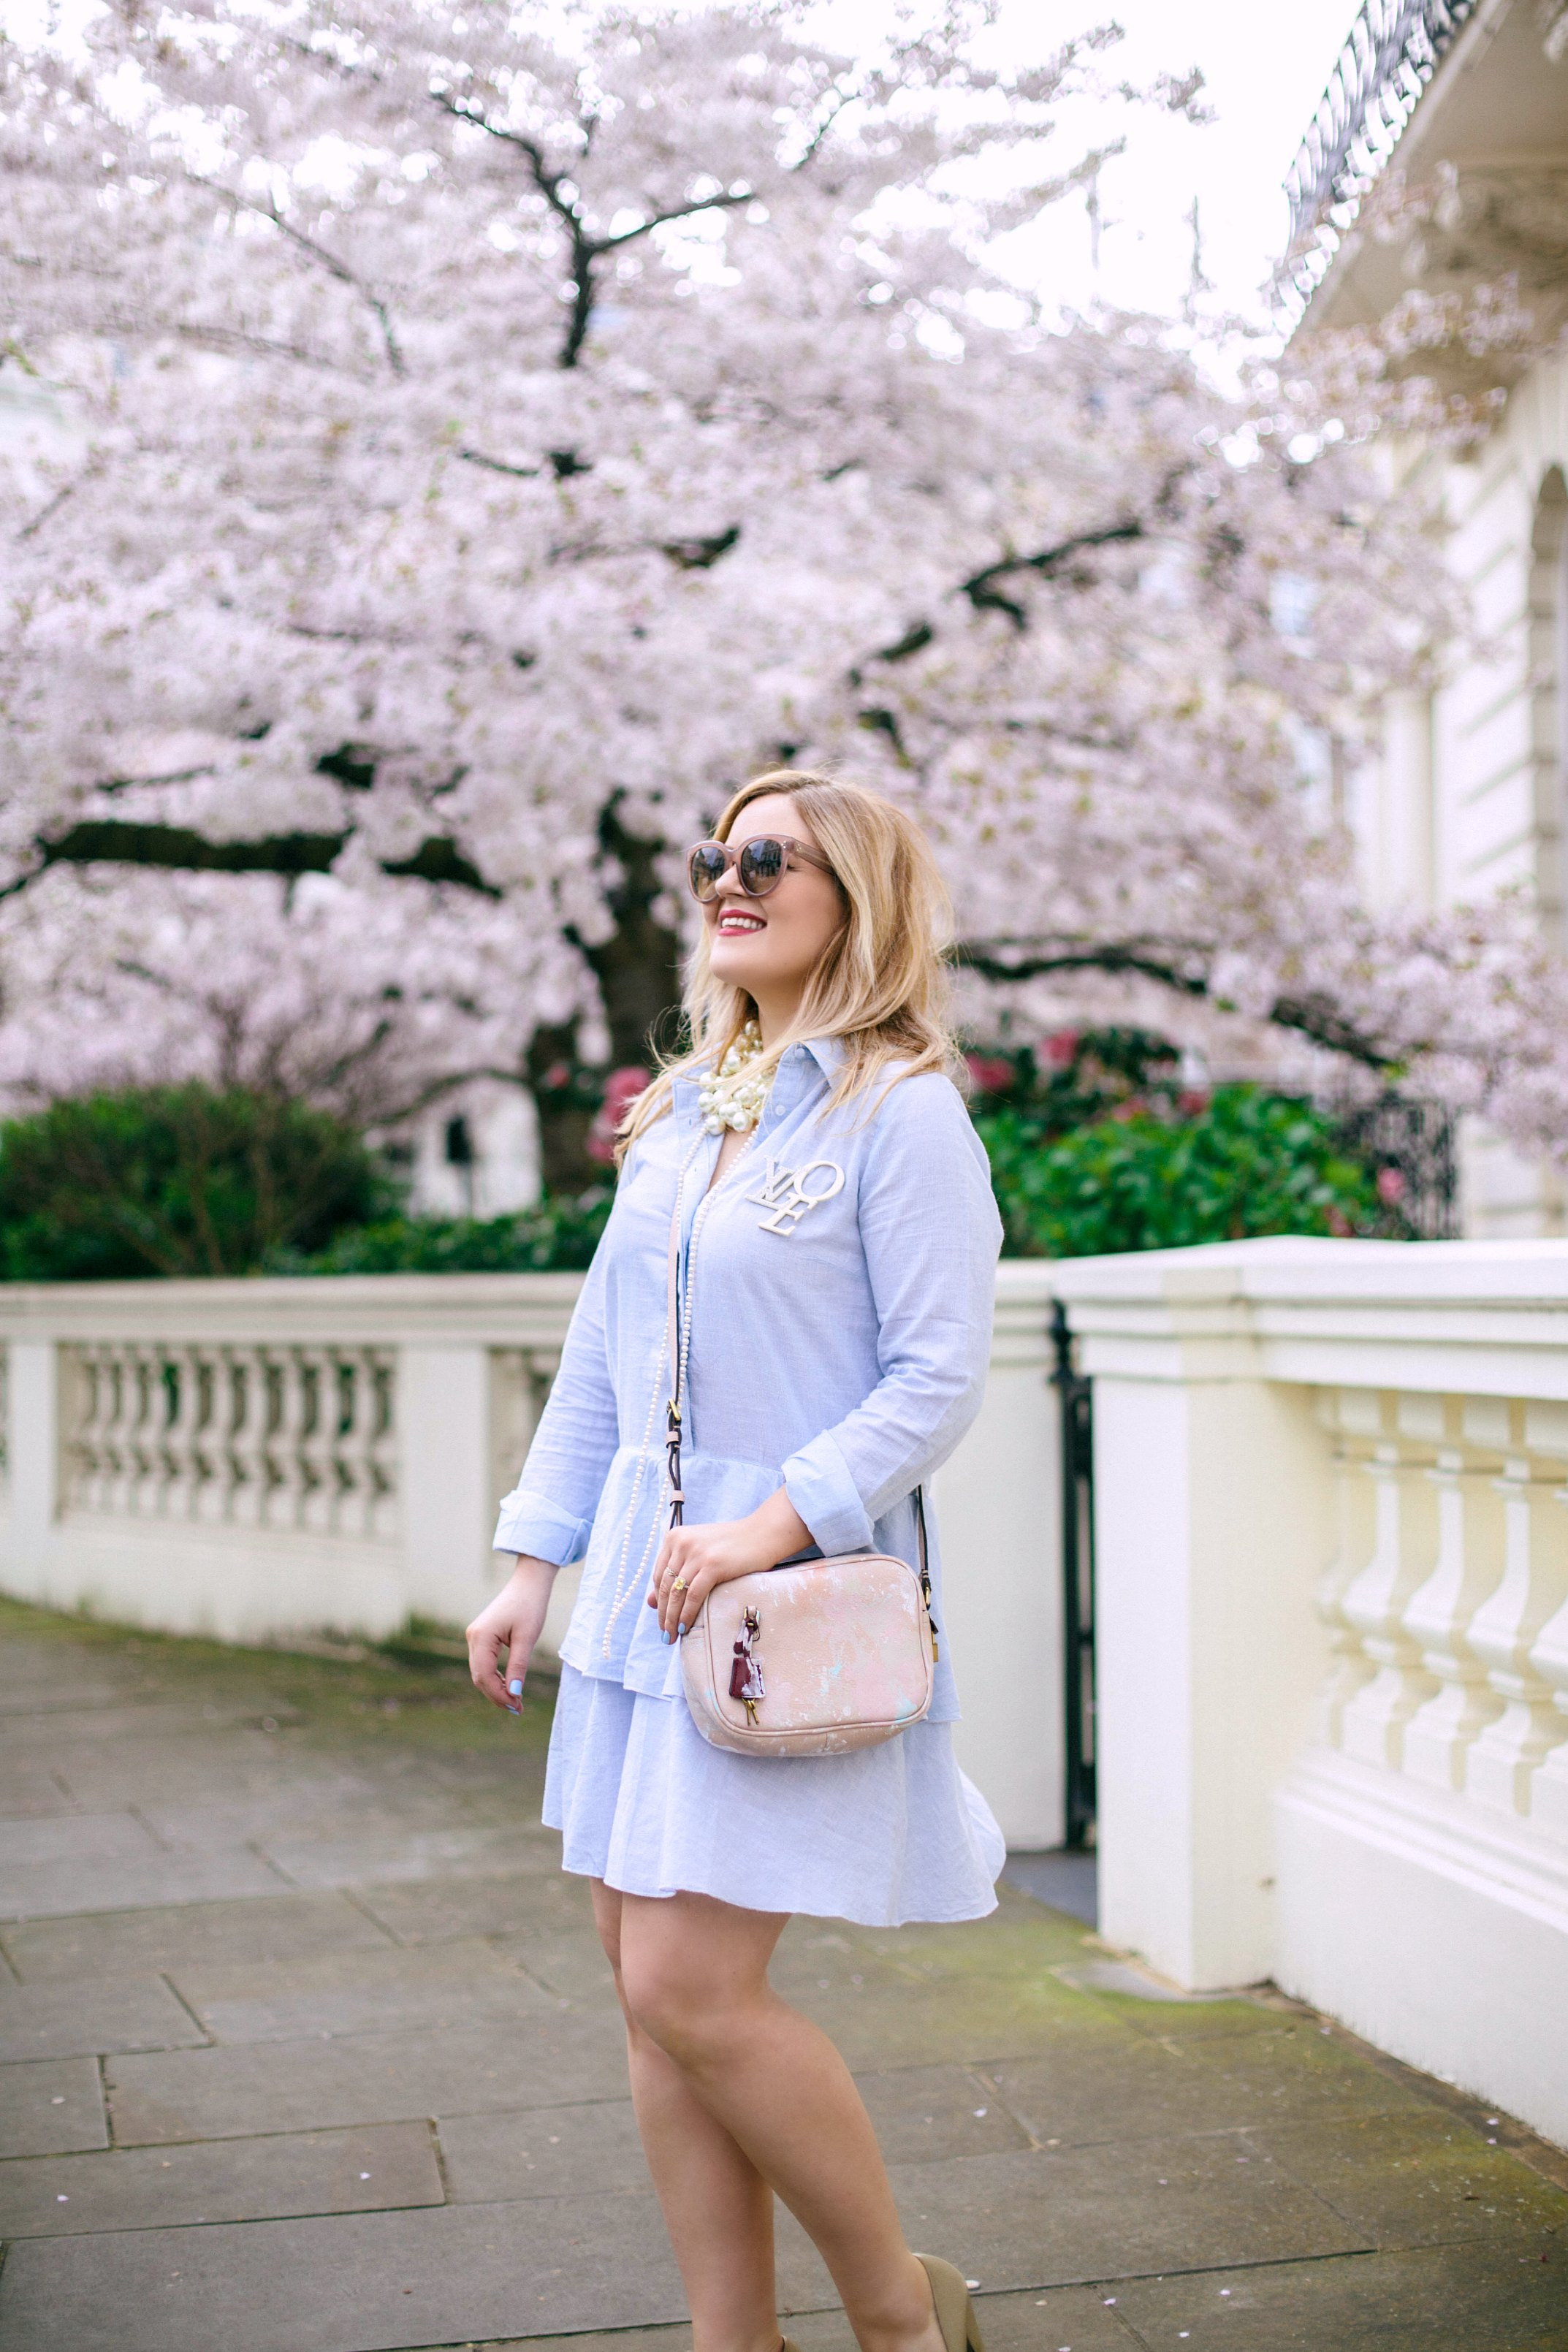 Spring (Shirt)dressing: How to Dress for Those In-Between Days